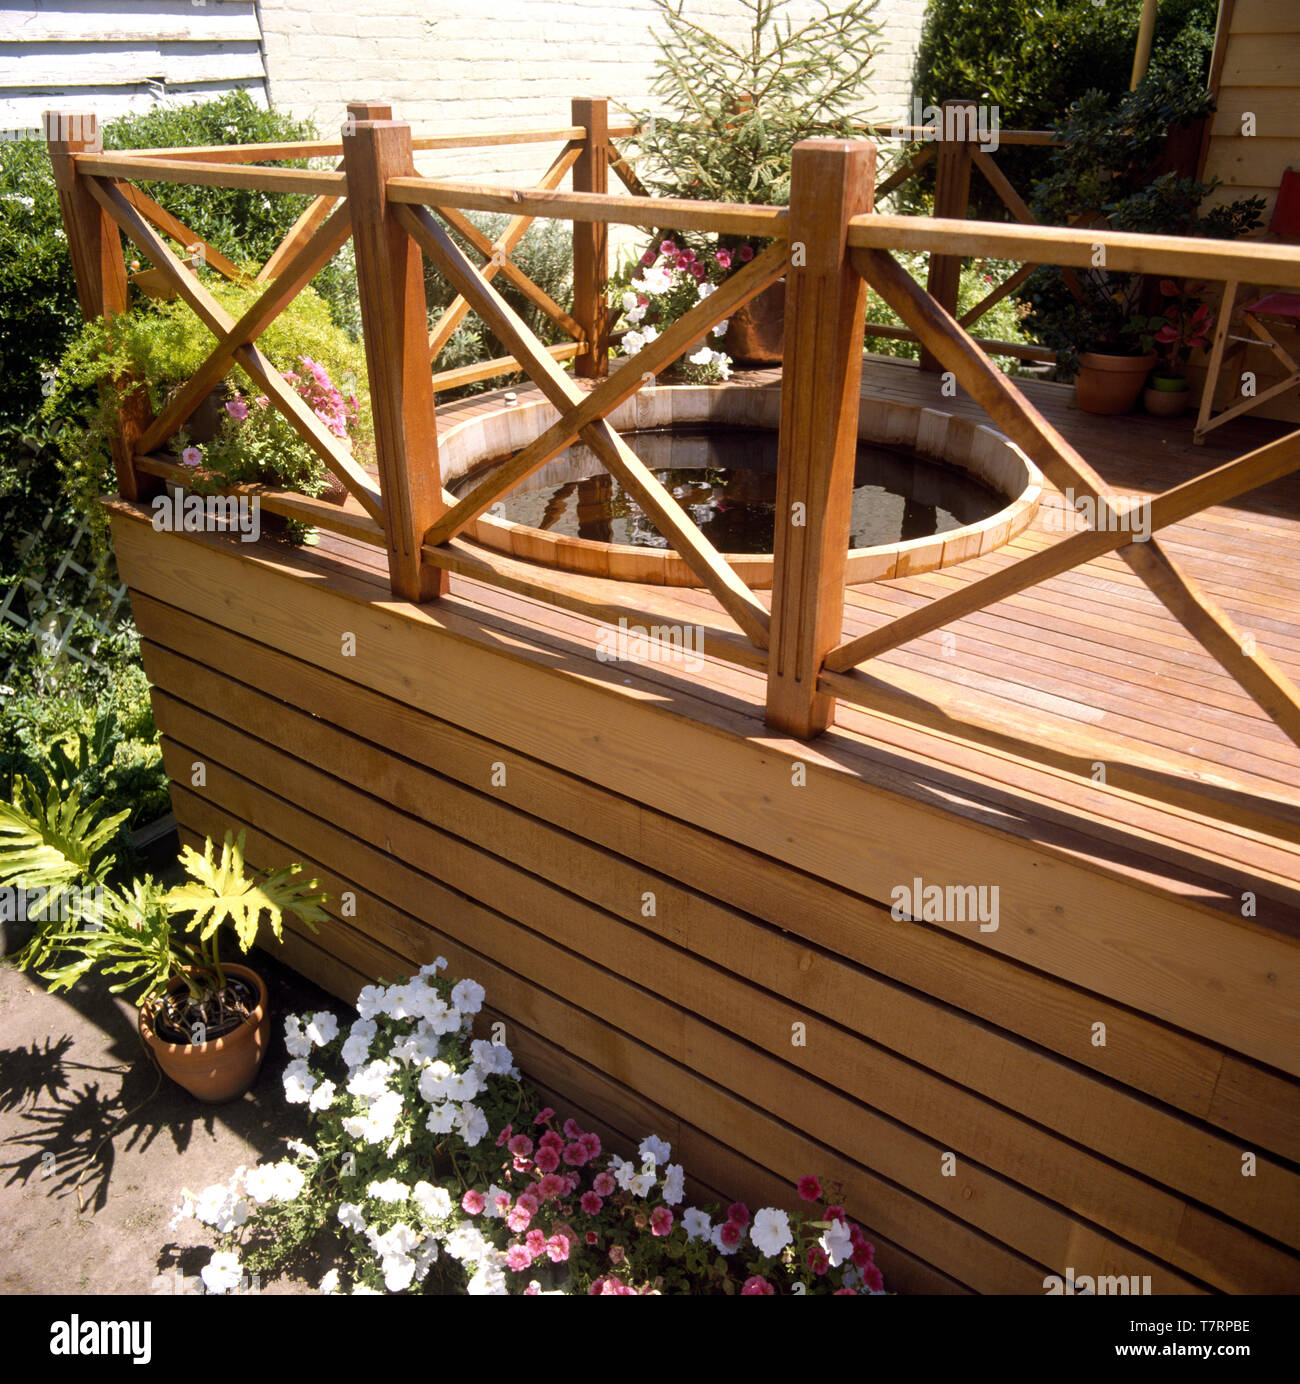 Petunias In Pots Below Raised Decking With A Circular Hot Tub In An Urban Garden Stock Photo Alamy